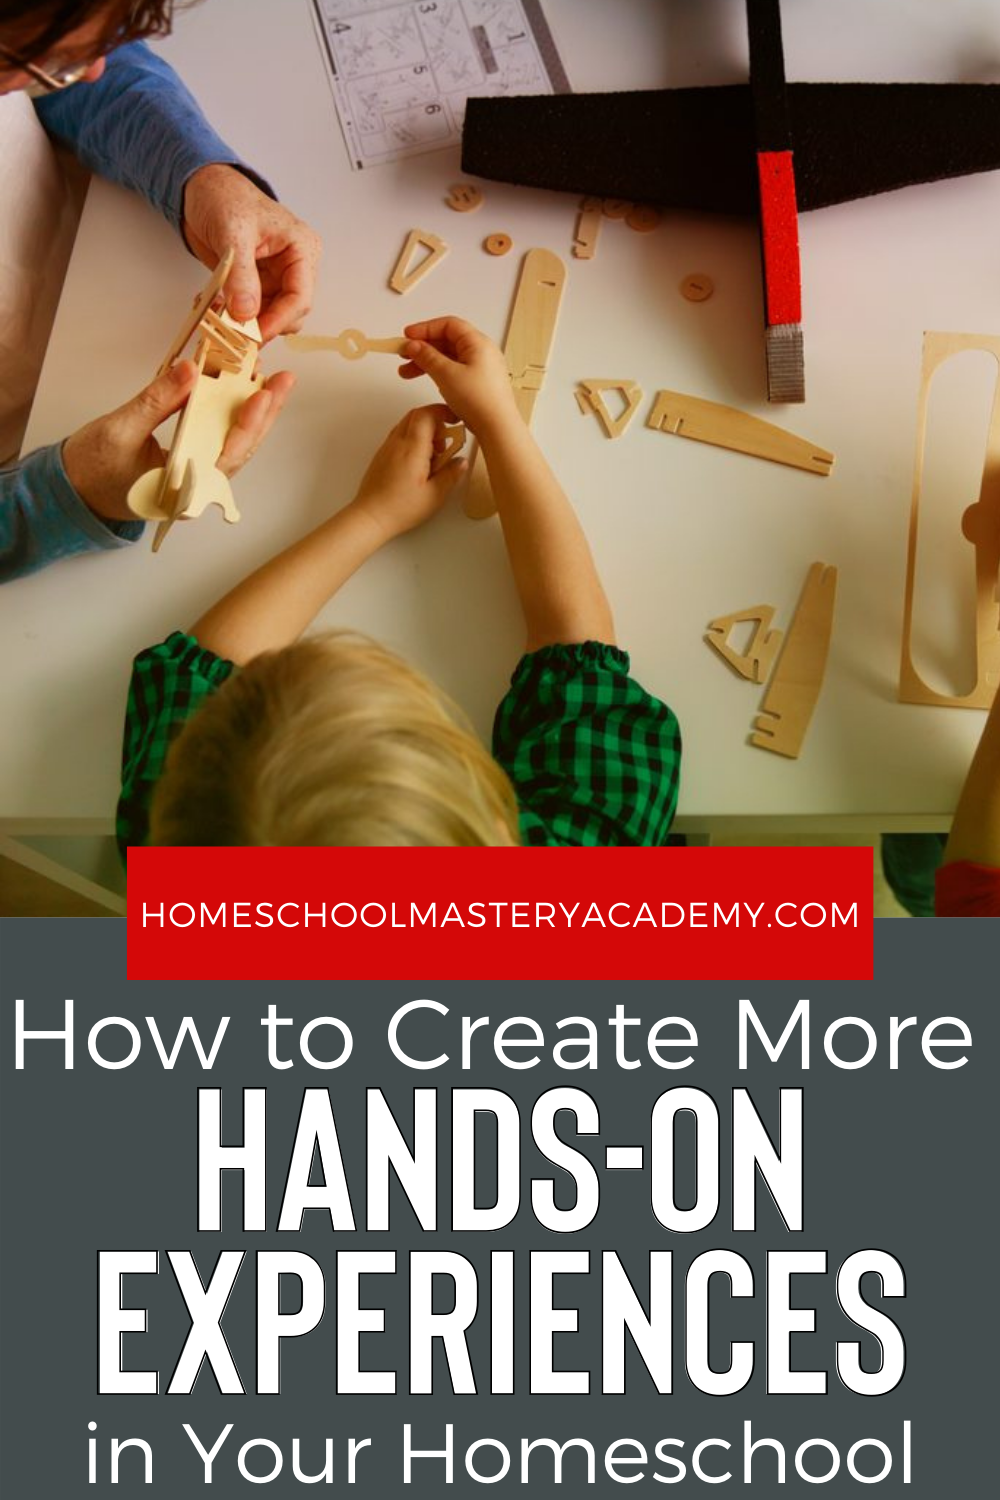 Easy Ways to Incorporate More Hands On Homeschool Ideas! Kids love to learn with hands-on activities and they retain information even better when you include hands-on fun. #homeschool #handson #handsonactivities #homeschoolideas